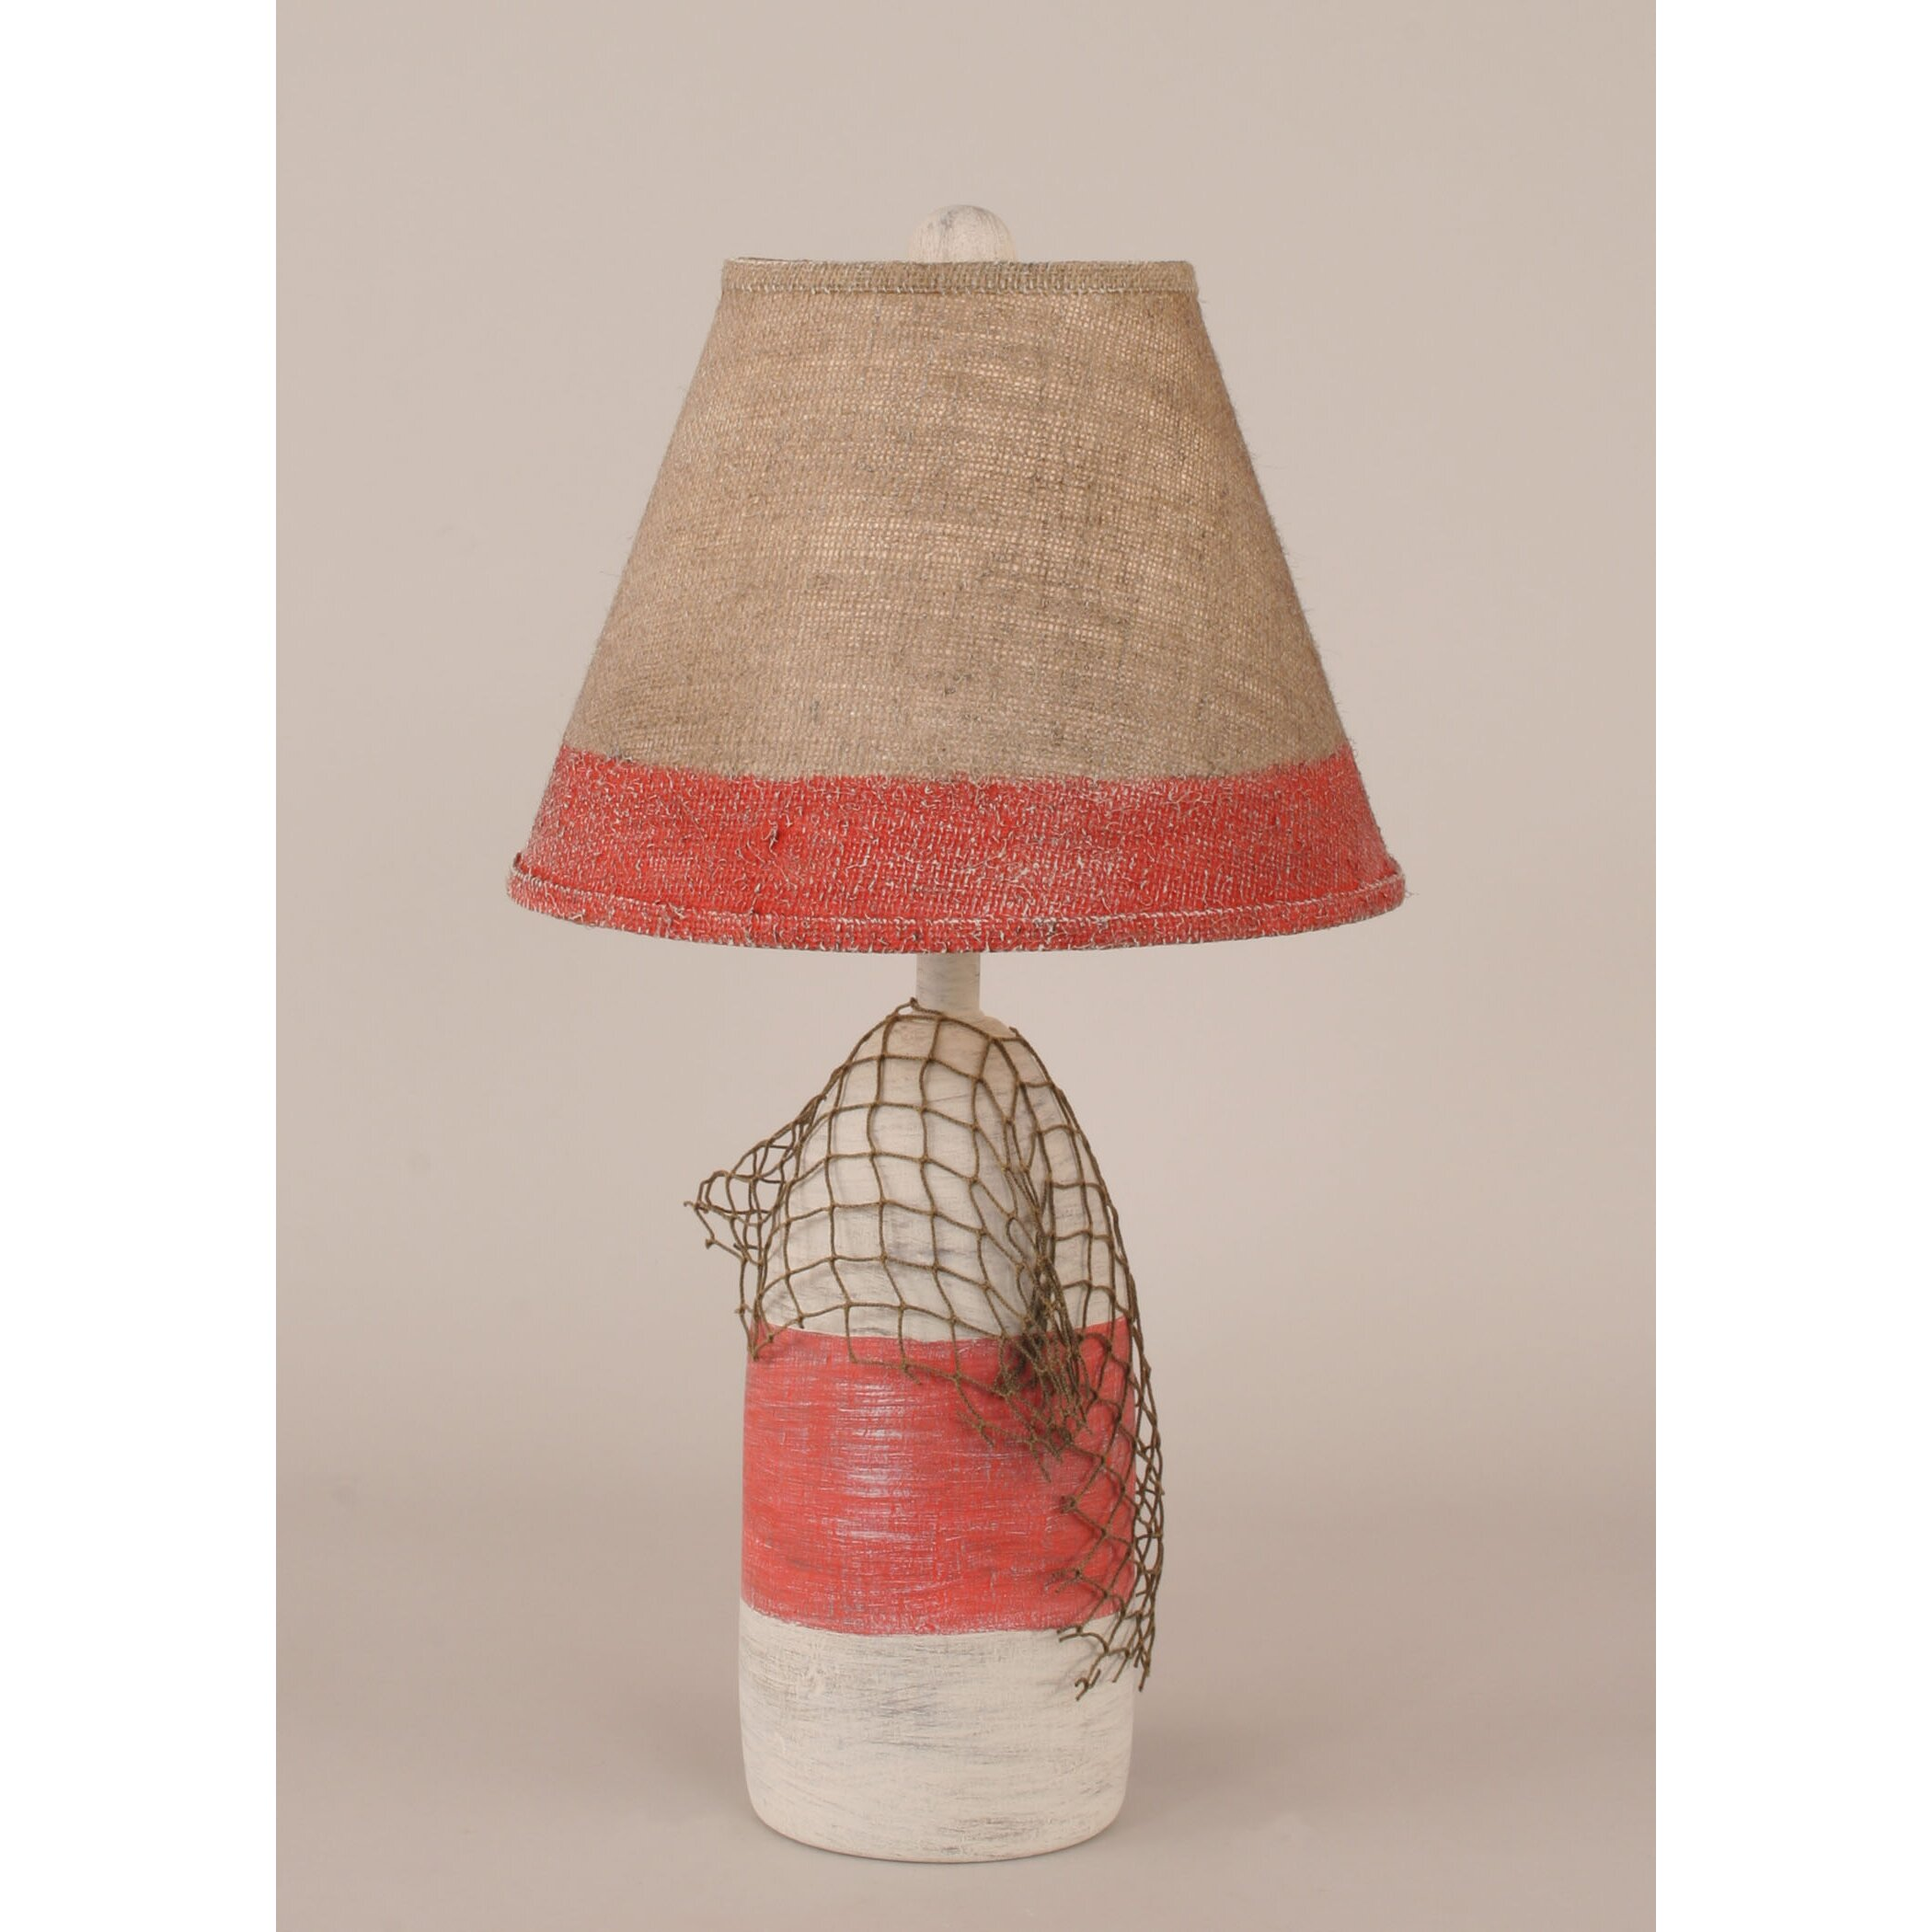 Coastal Living Small Buoy 22 Quot H Table Lamp With Empire